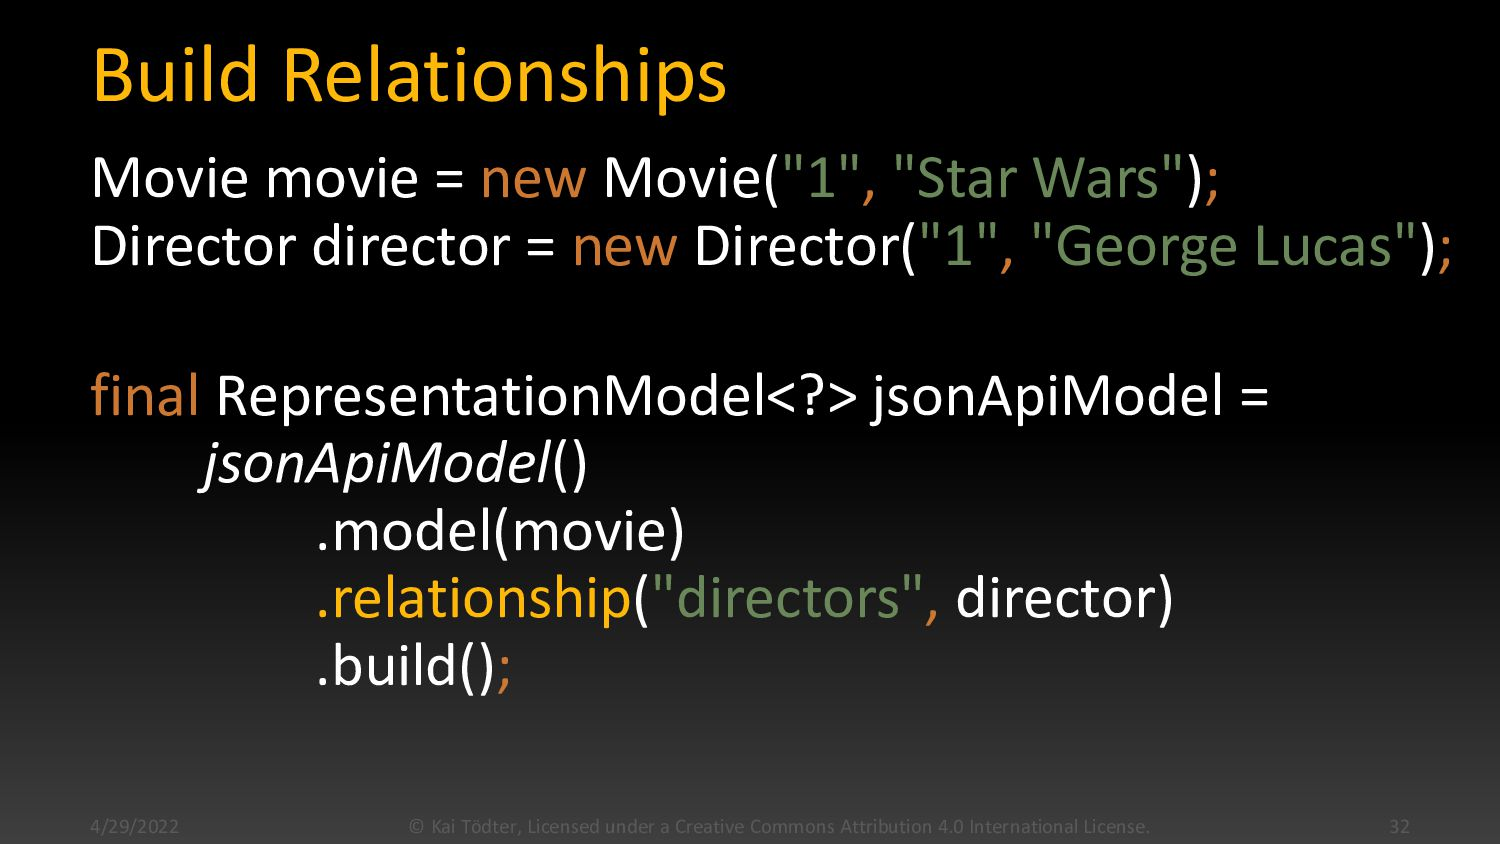 "Build Relationships Movie movie = new Movie(""1""..."